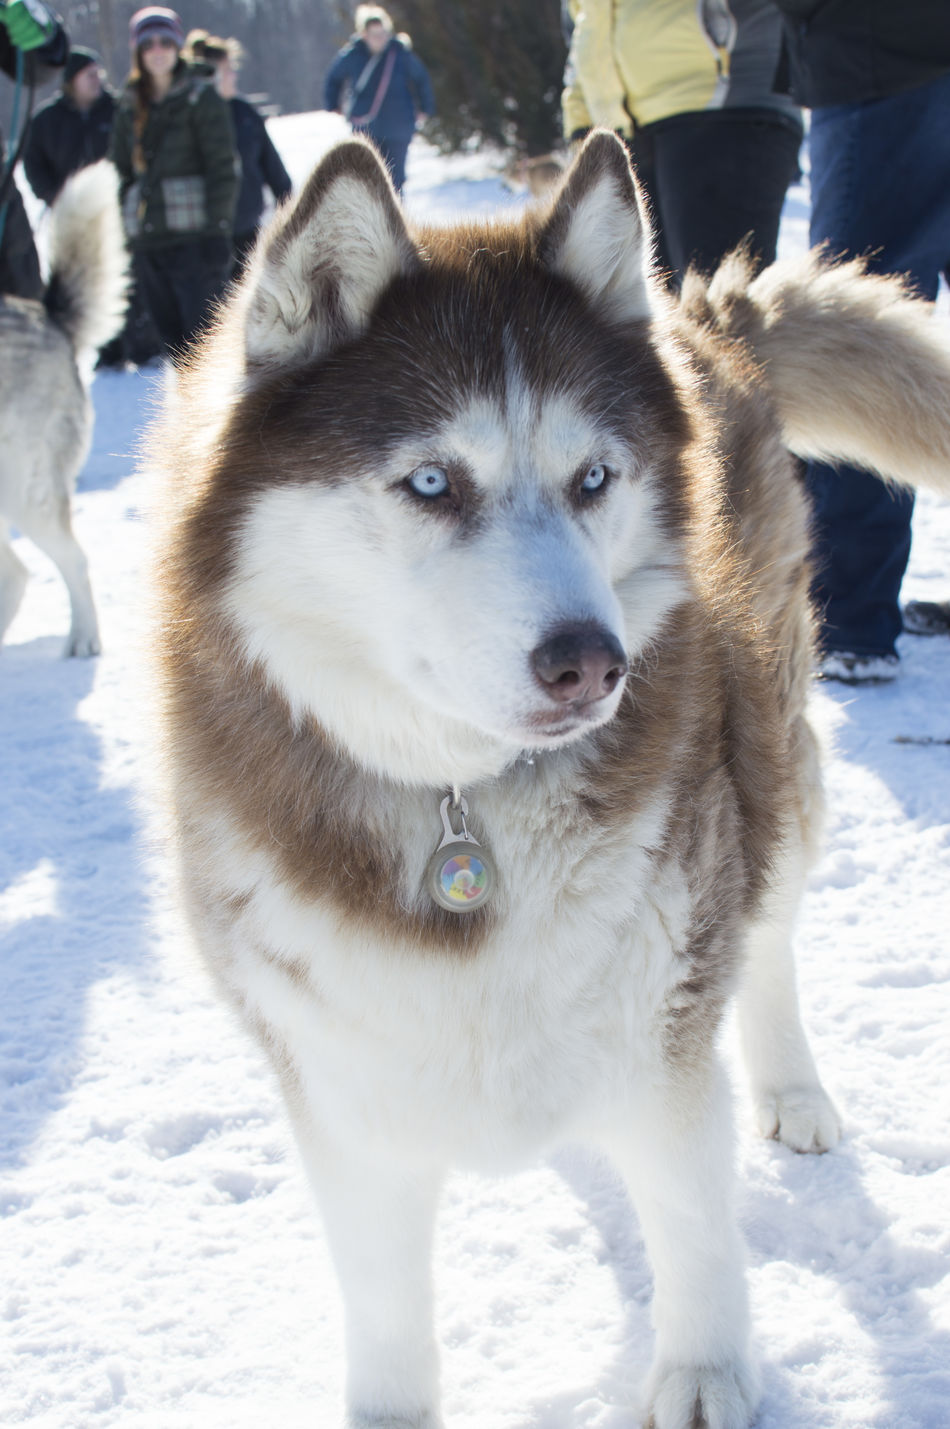 BlueEyes Cold Temperature Day Dog Husky Looking At Camera Mammal Nature No People Outdoors Pets Portrait Siberian Husky Siberian Husky Sled Dog Snow Winter Minnesota Nature Minnesota Mn Beauty In Nature Husky ♡ White Color One Animal